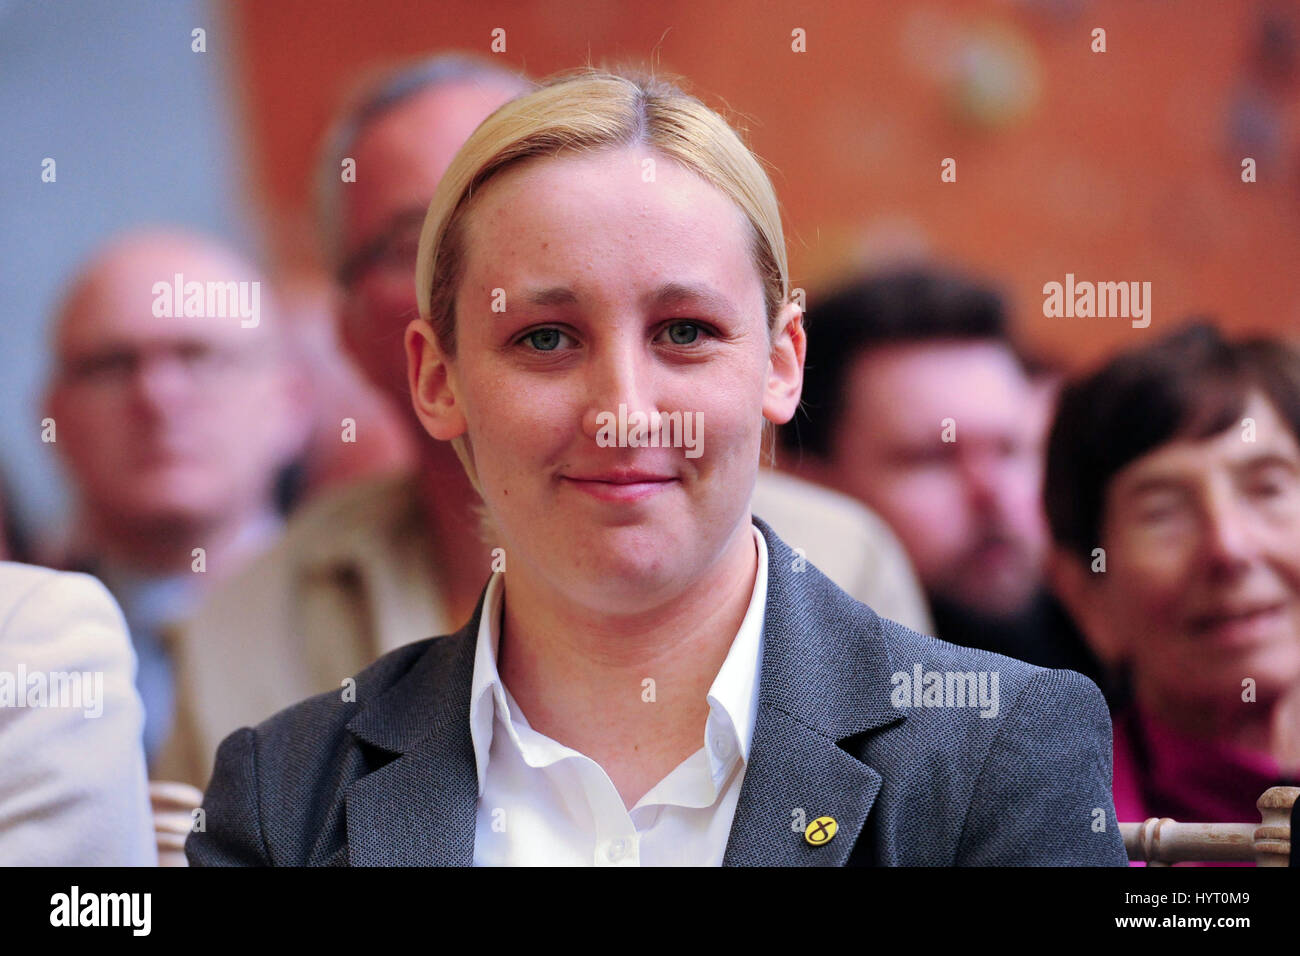 File image: Mhairi Black, the 20-year-old student who has unseated shadow foreign secretary Douglas Alexander and - Stock Image